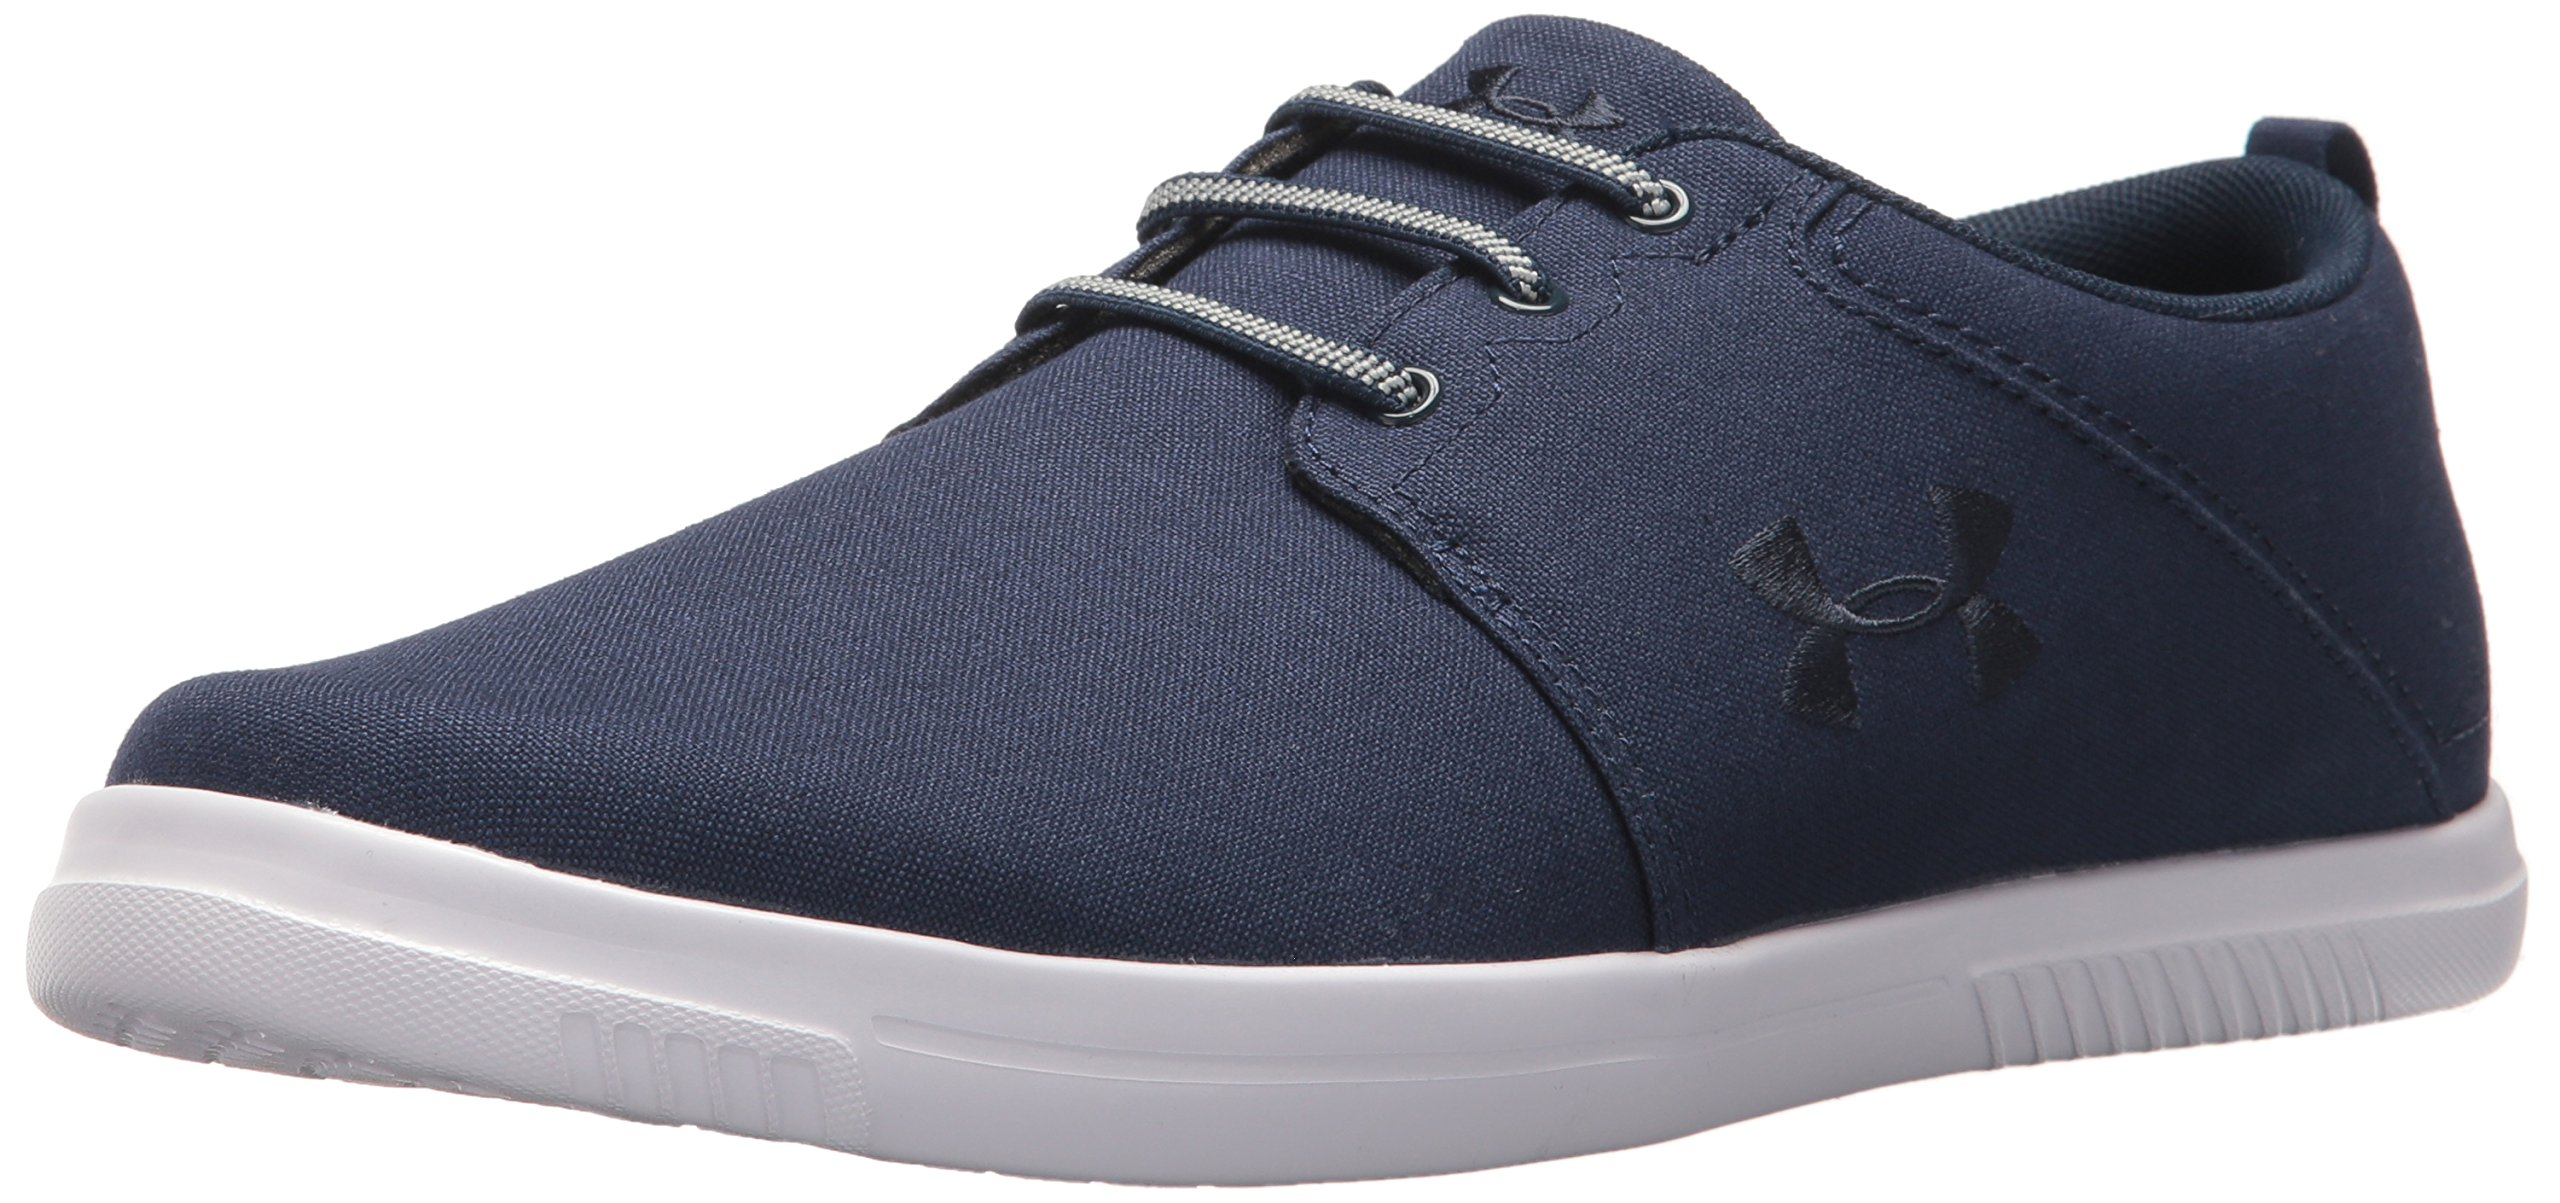 Under Armour Men's Street Encounter IV Heeled Sandal, Academy (402)/Steel-402, 11 by Under Armour